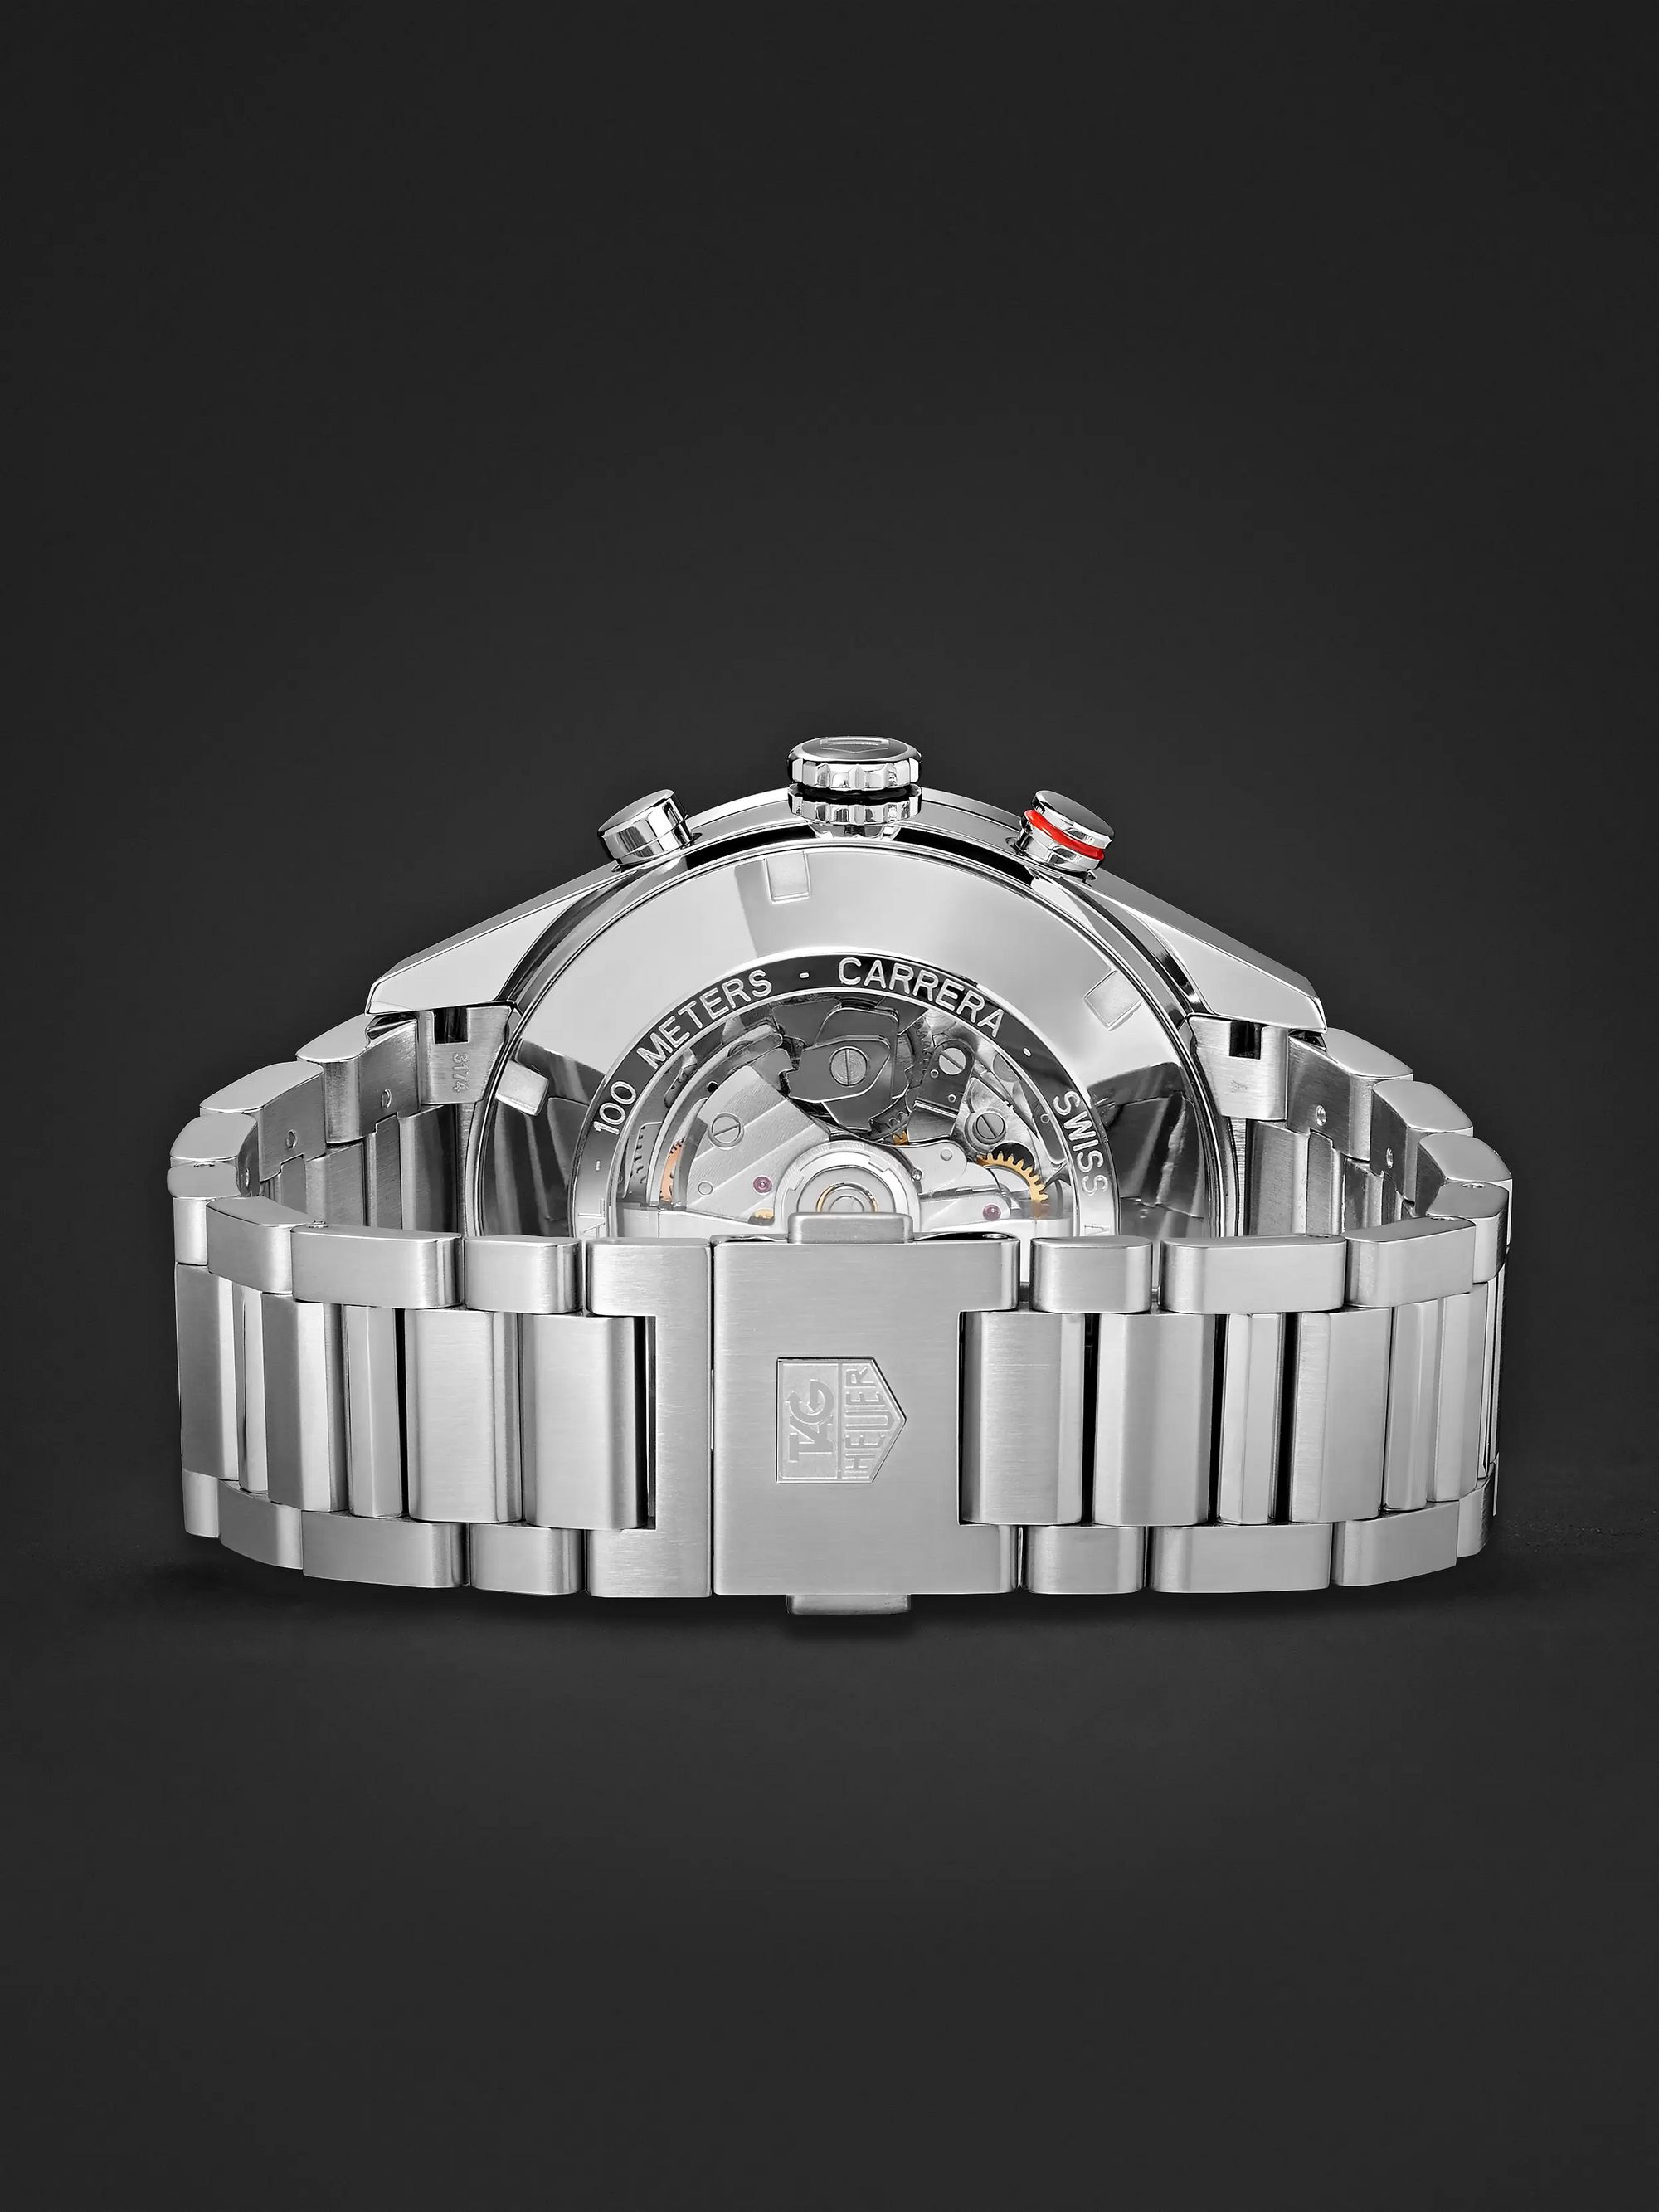 TAG Heuer Carrera Automatic Chronograph 43mm Polished-Steel Watch, Ref. No. CV2A1V.BA0738